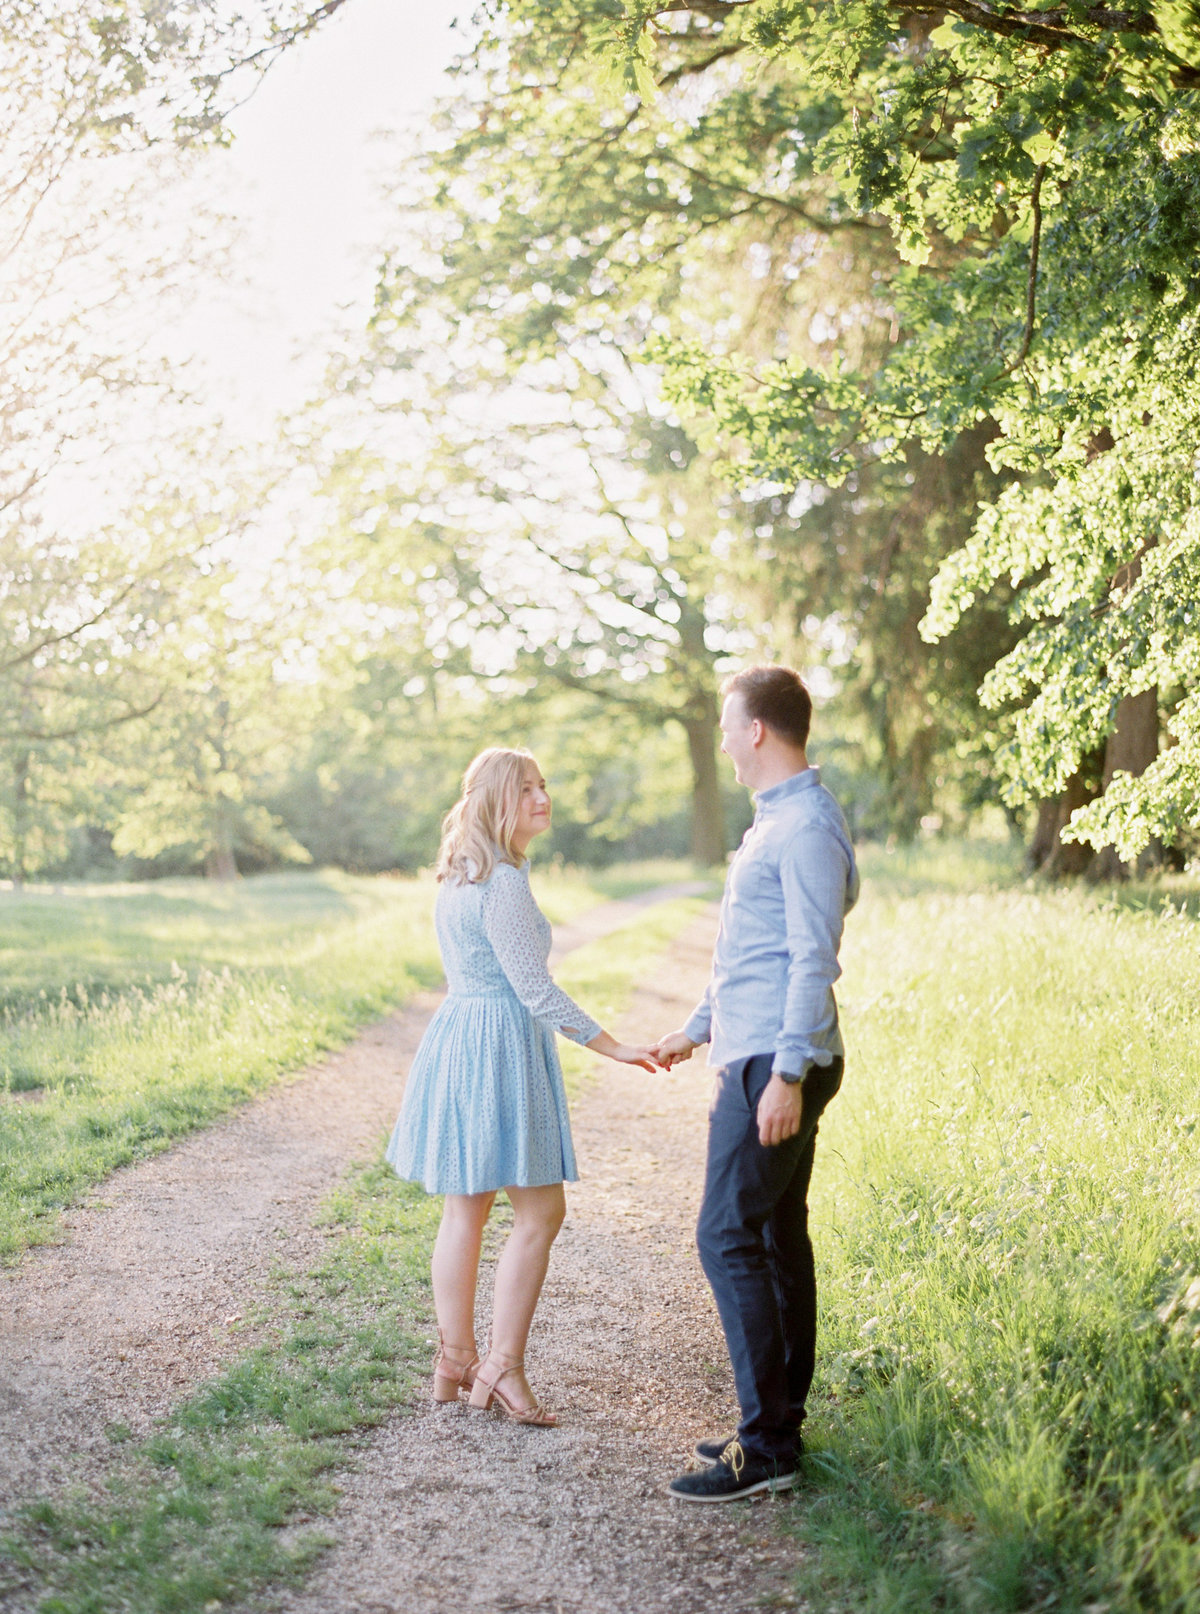 Romina Schischke Photography Engagement Slideshow Image 00026